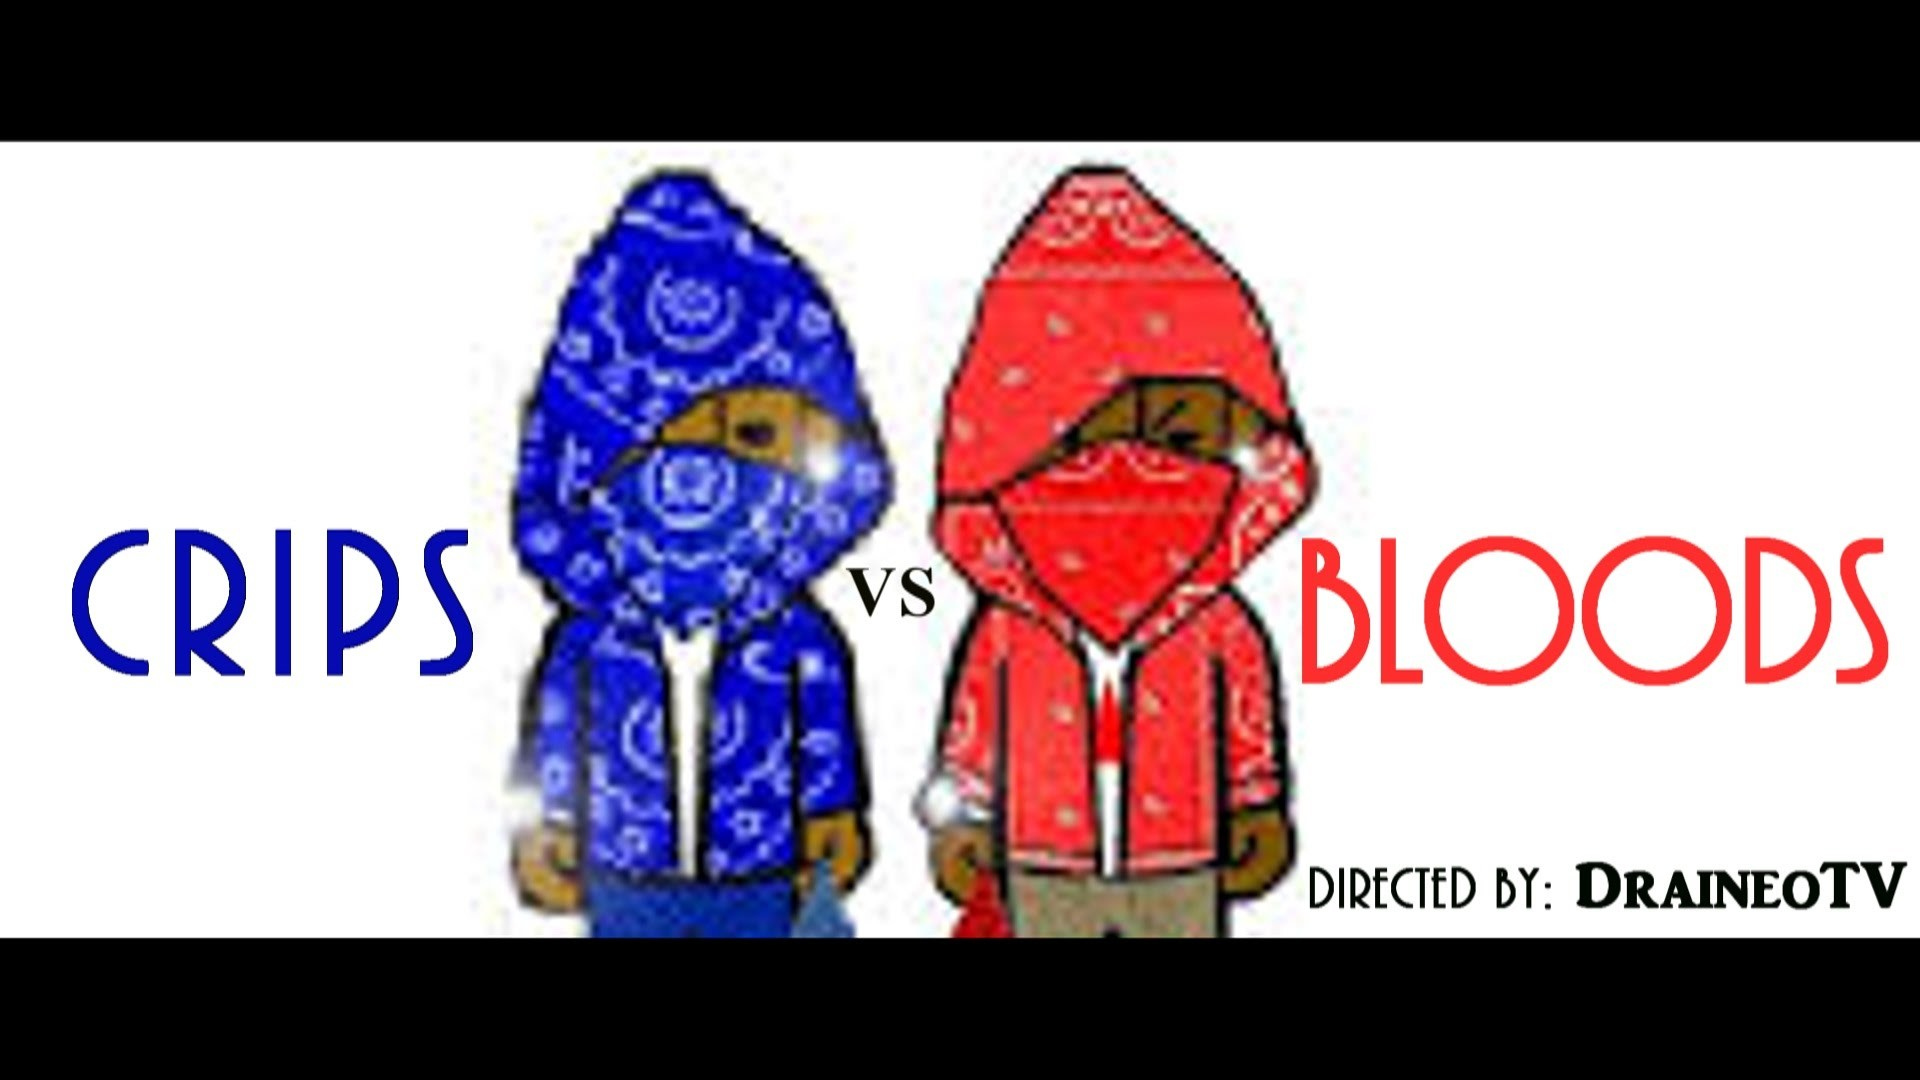 Crip wallpaper hd 74 images - Blood gang cartoon ...